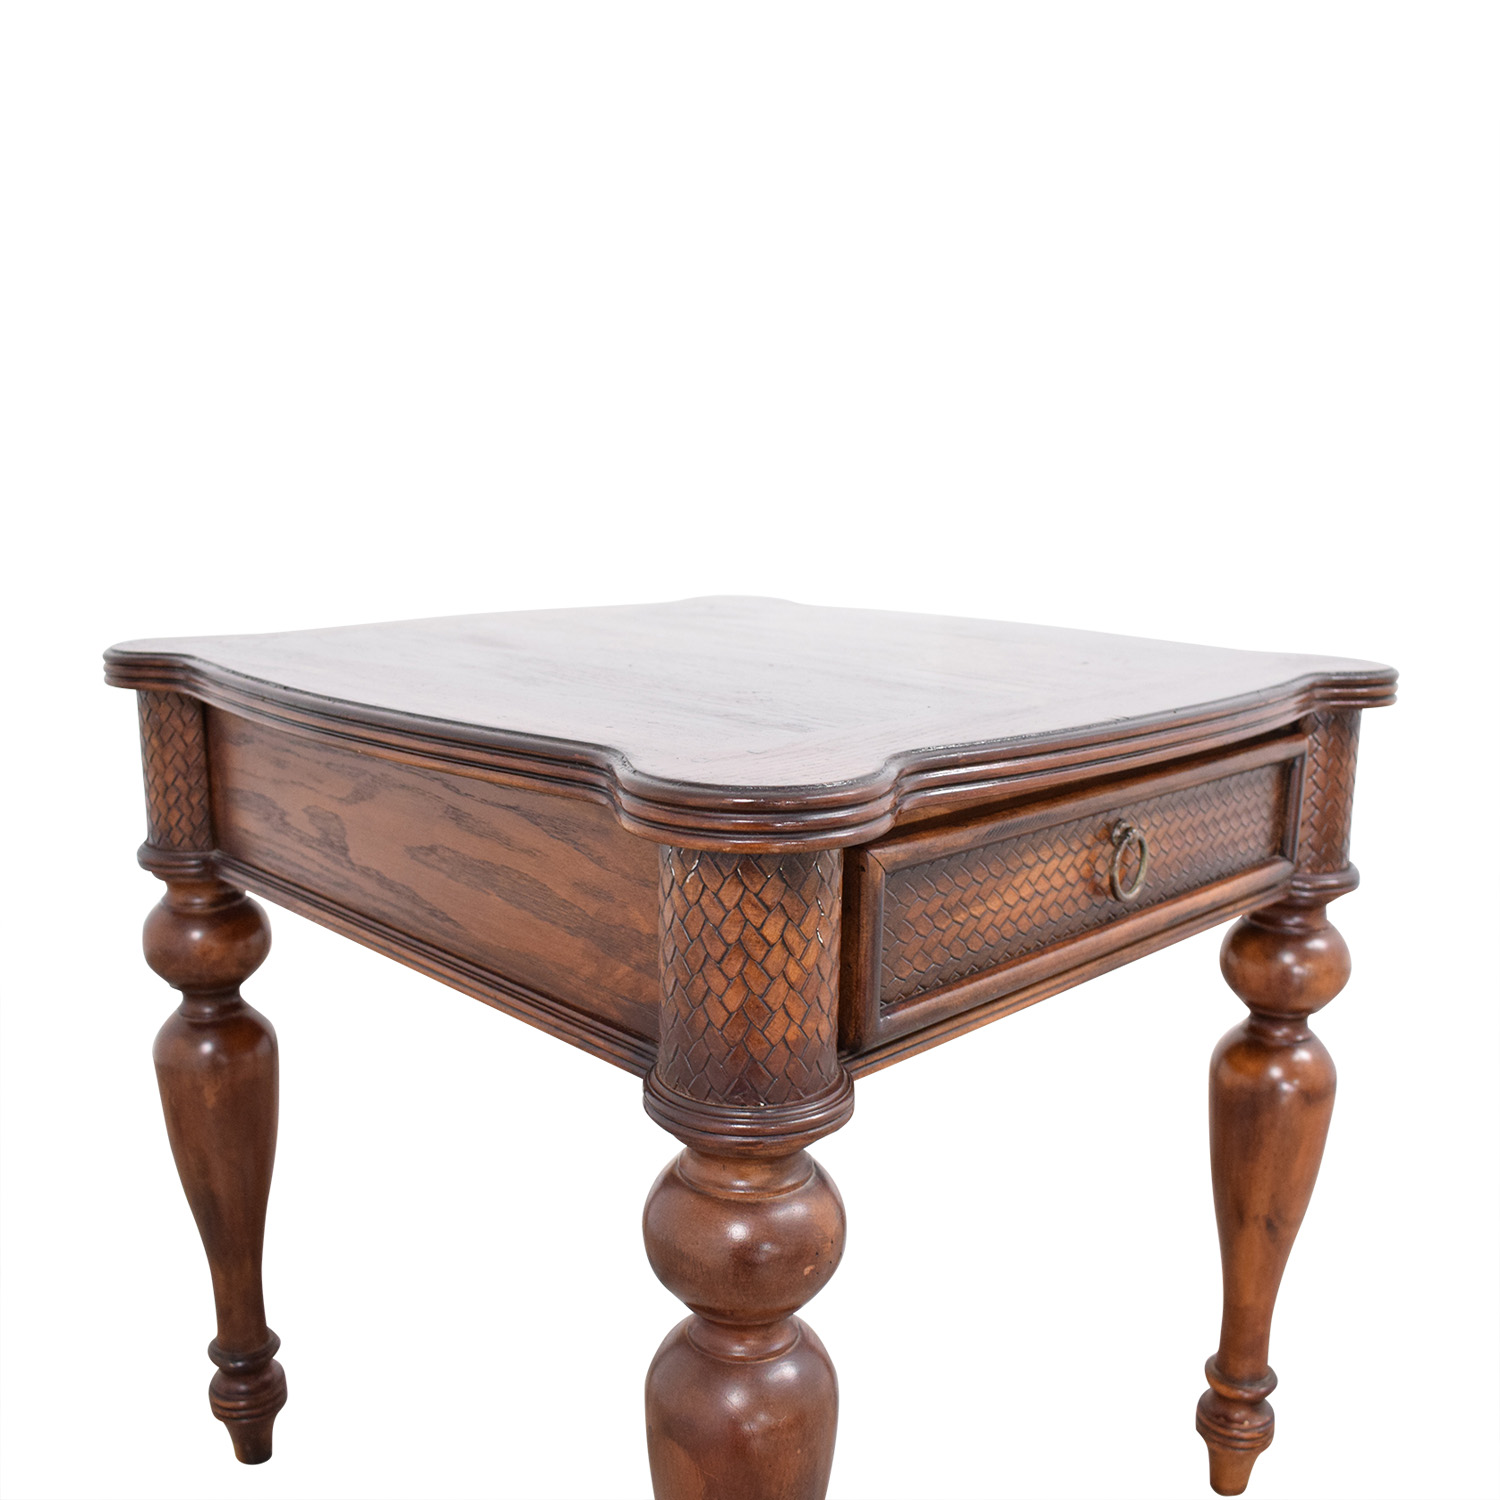 Living Room Side Table with Drawer dimensions